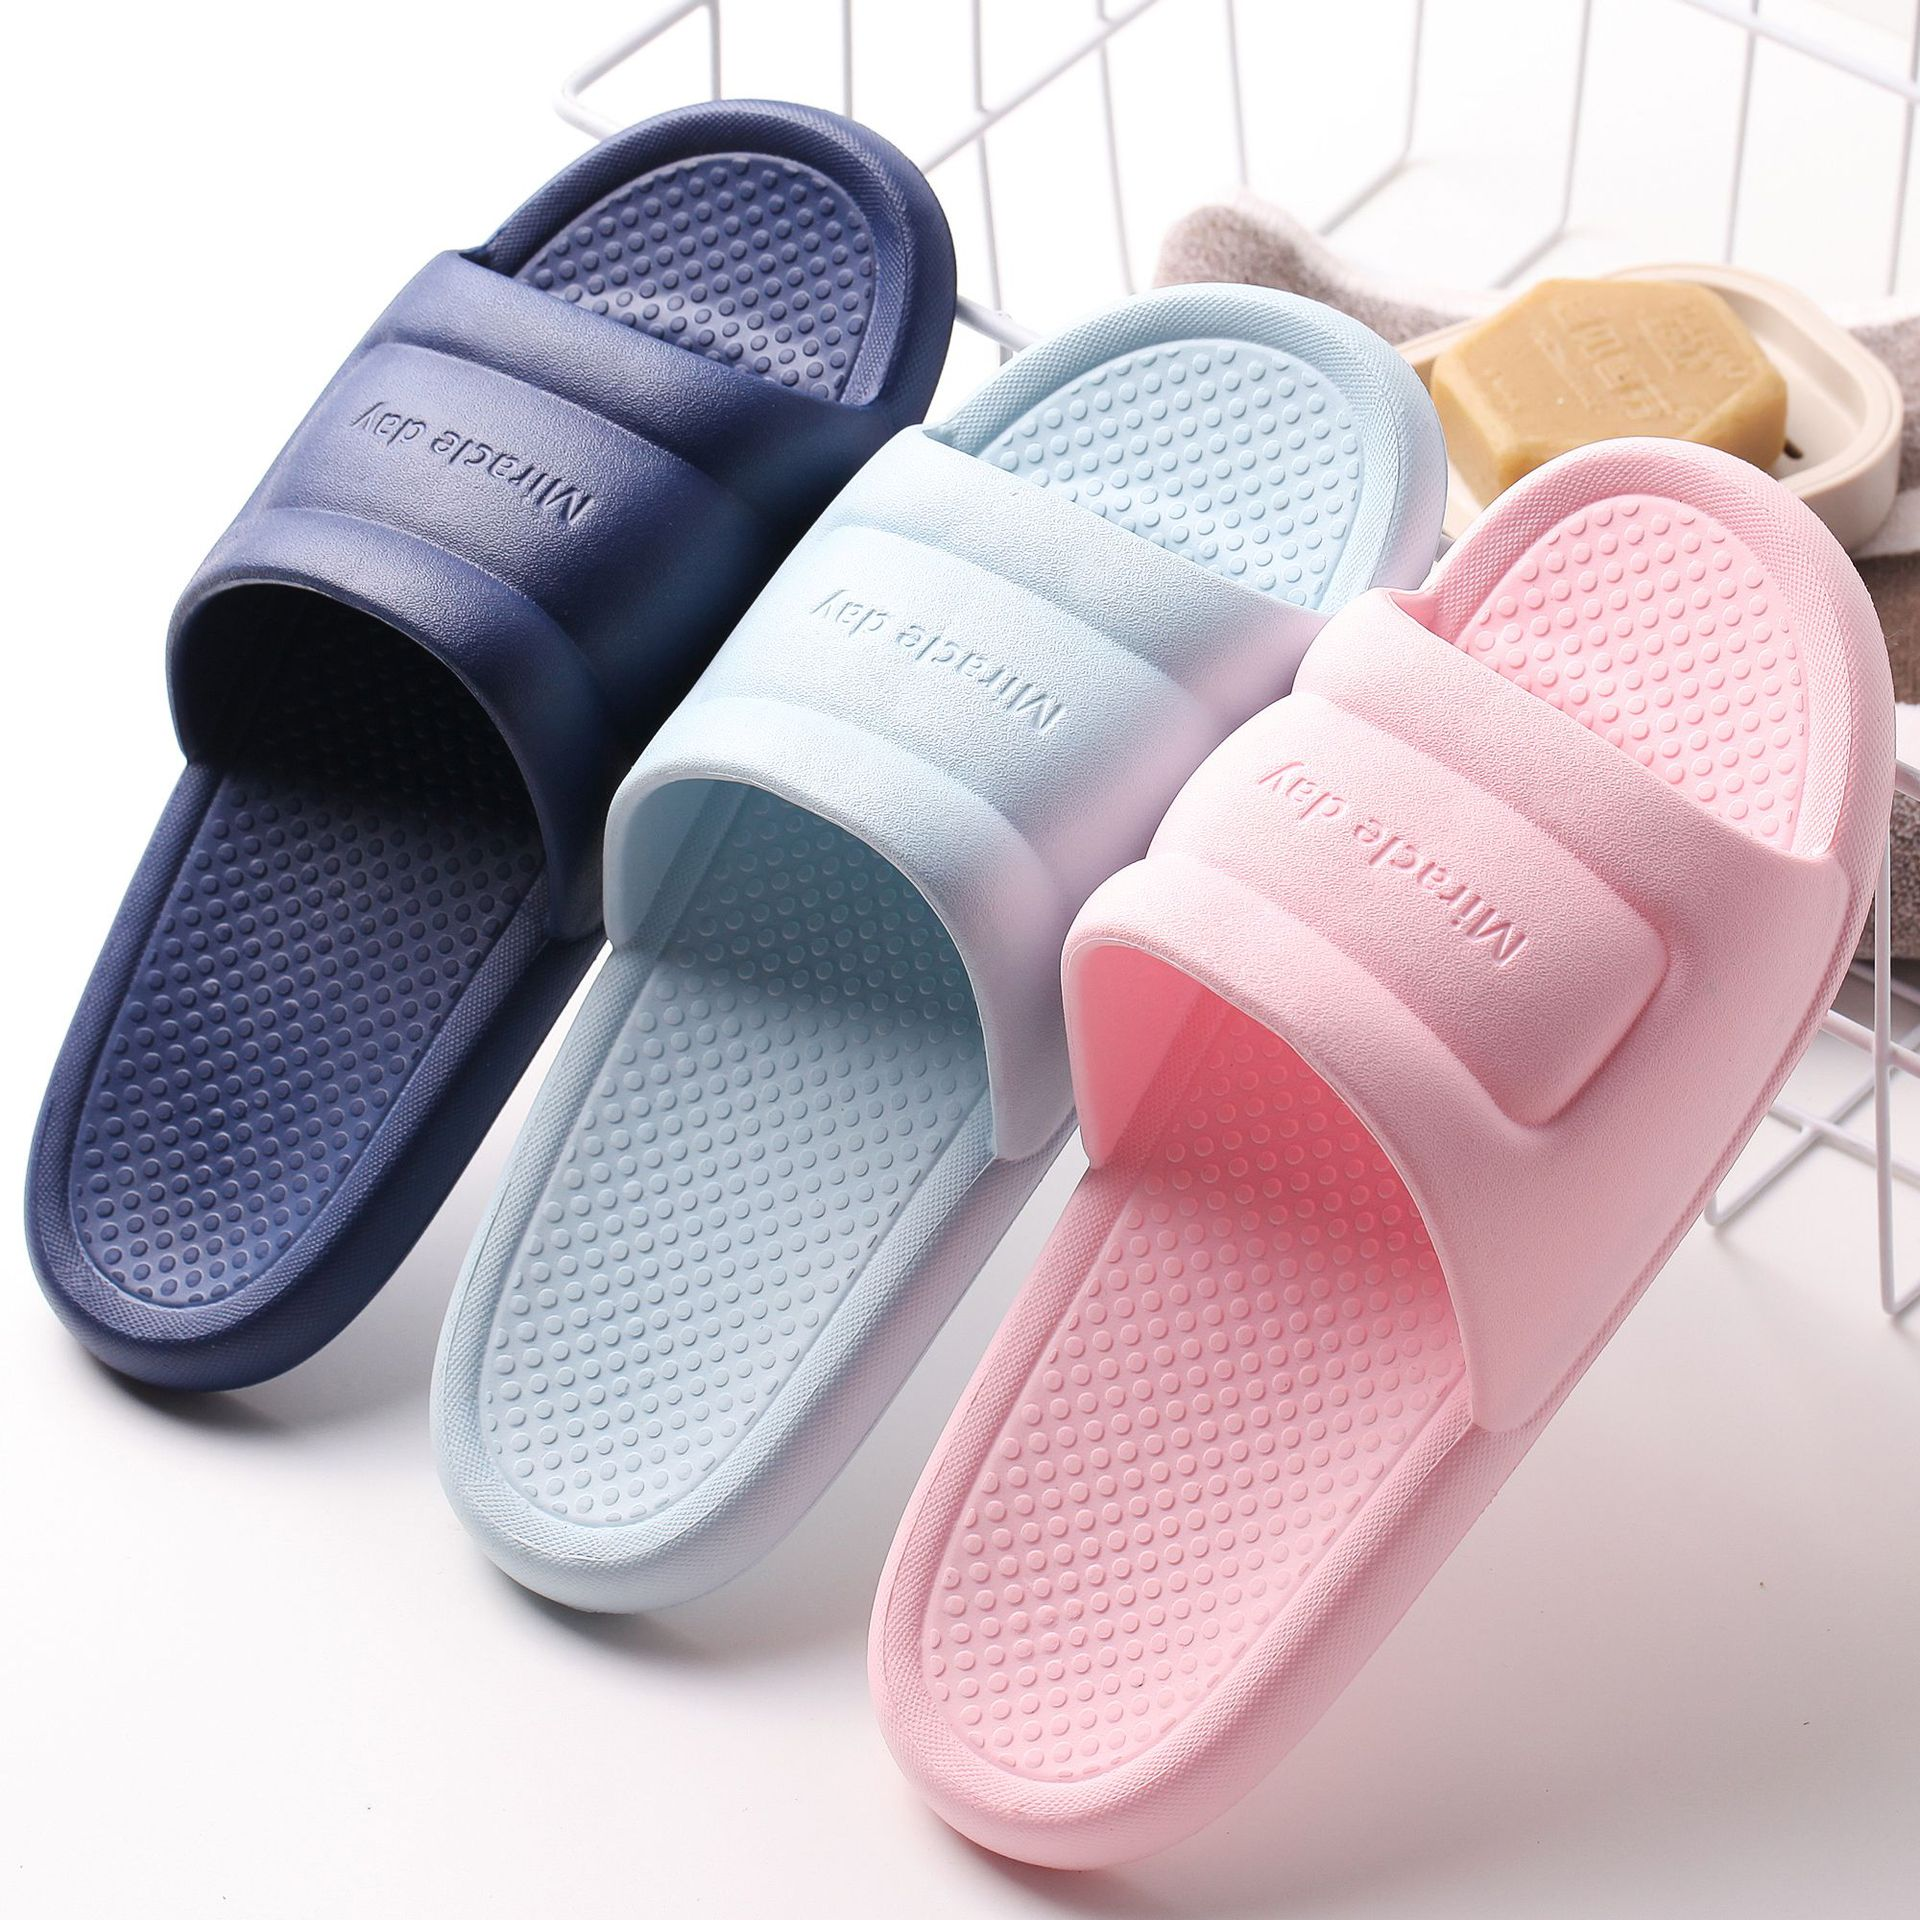 9063972252b Women Summer Slippers Soft Sole Slides Indoor   Outdoor Ladies Home  Slippers Platform Sandals Women Shoes